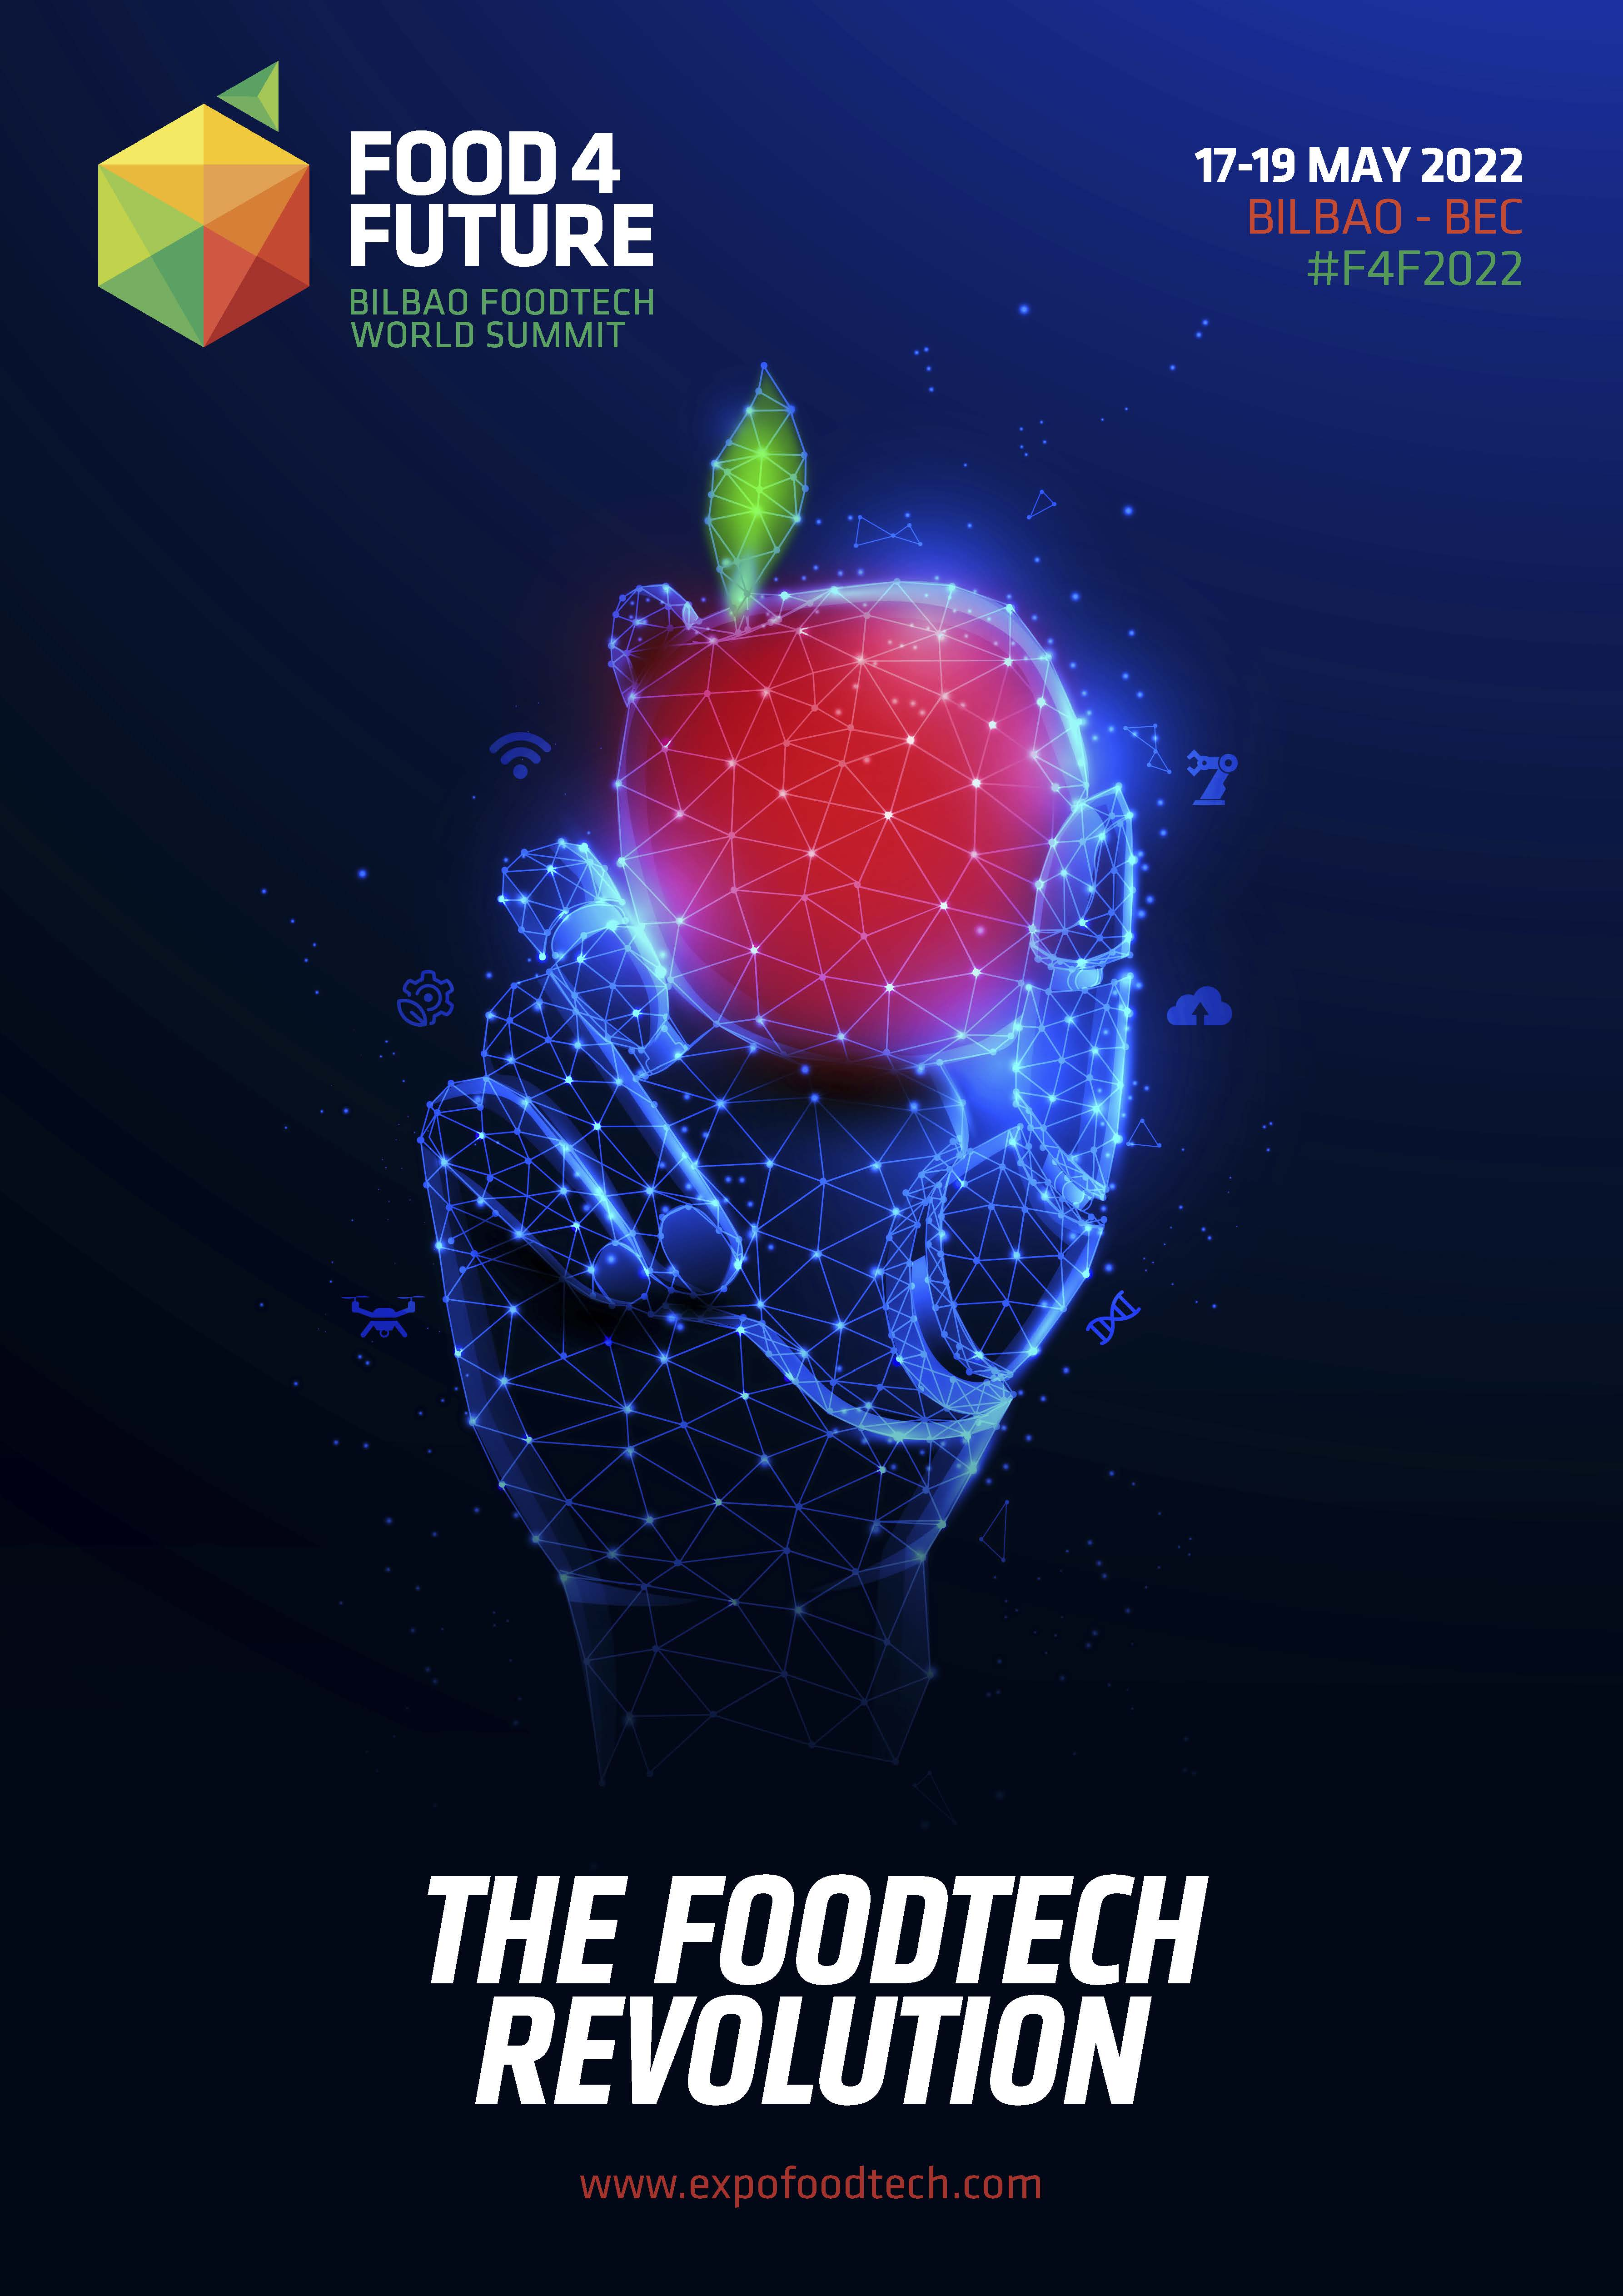 Food 4 Future Poster